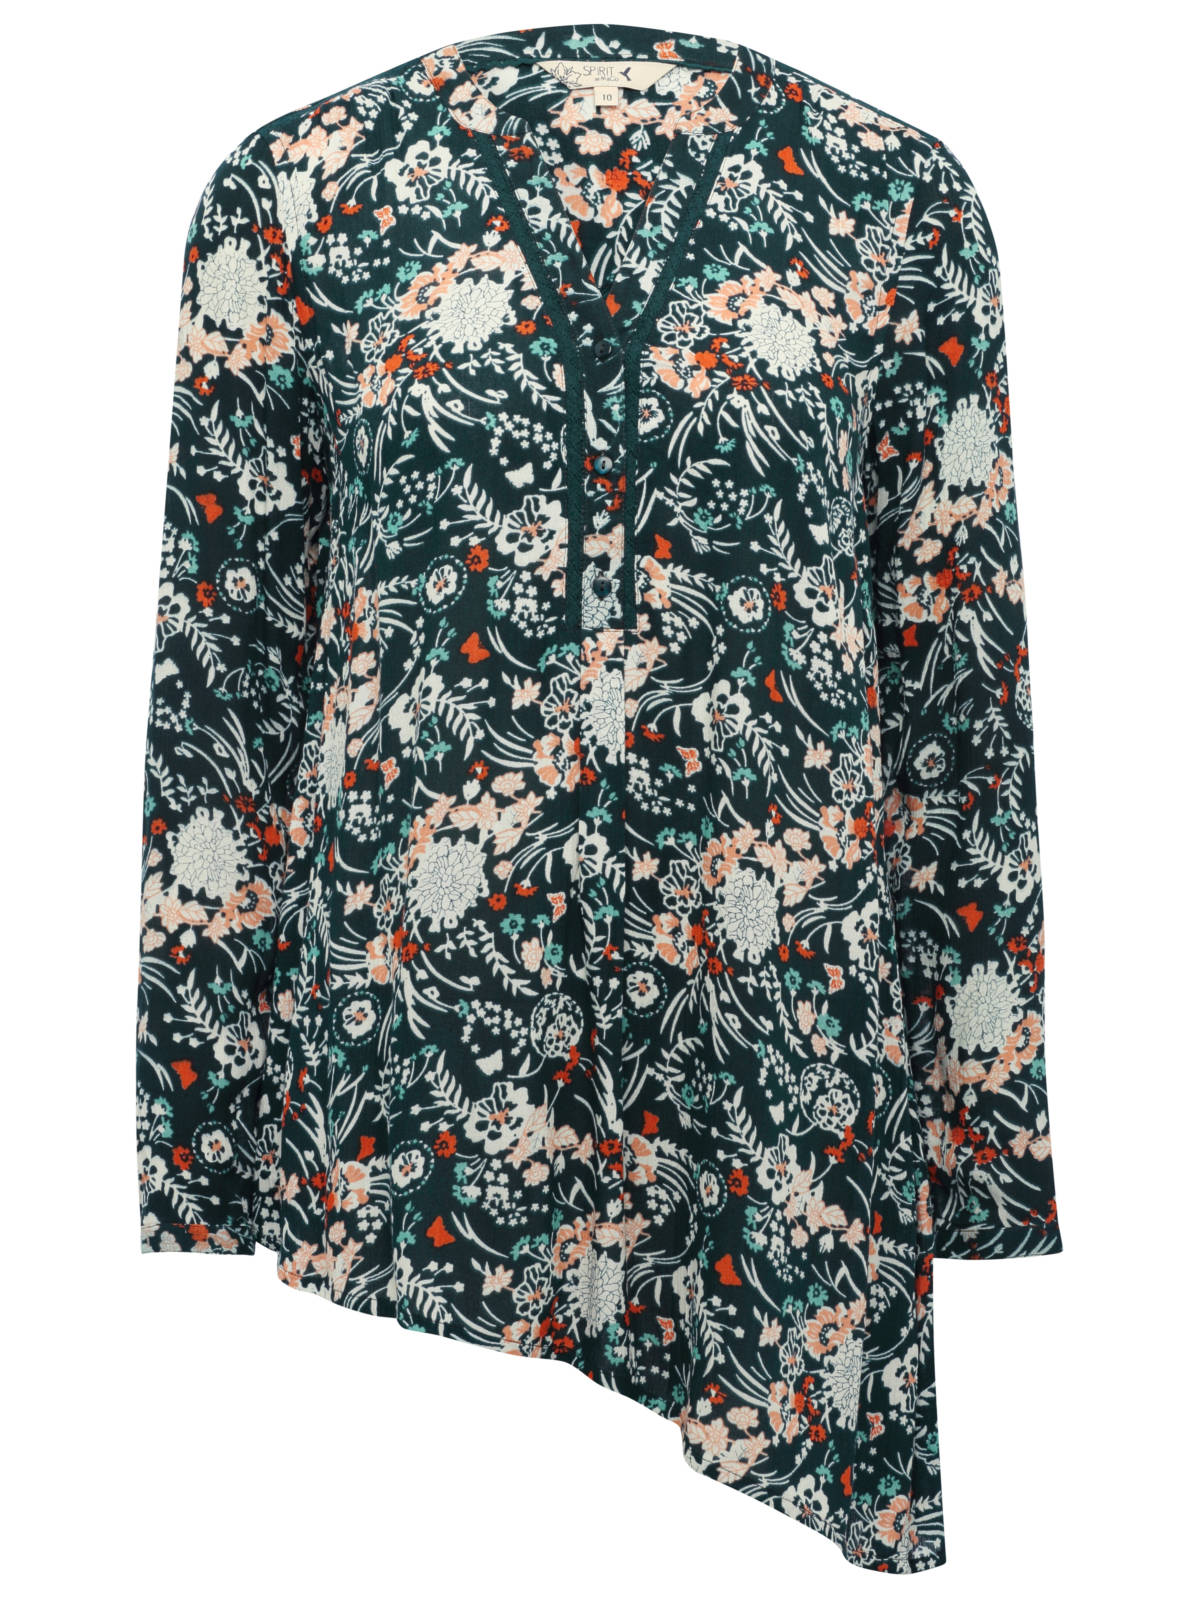 SHIRT LS - ASSYMETRIC VISCOSE CRINKLE - FOREST £26